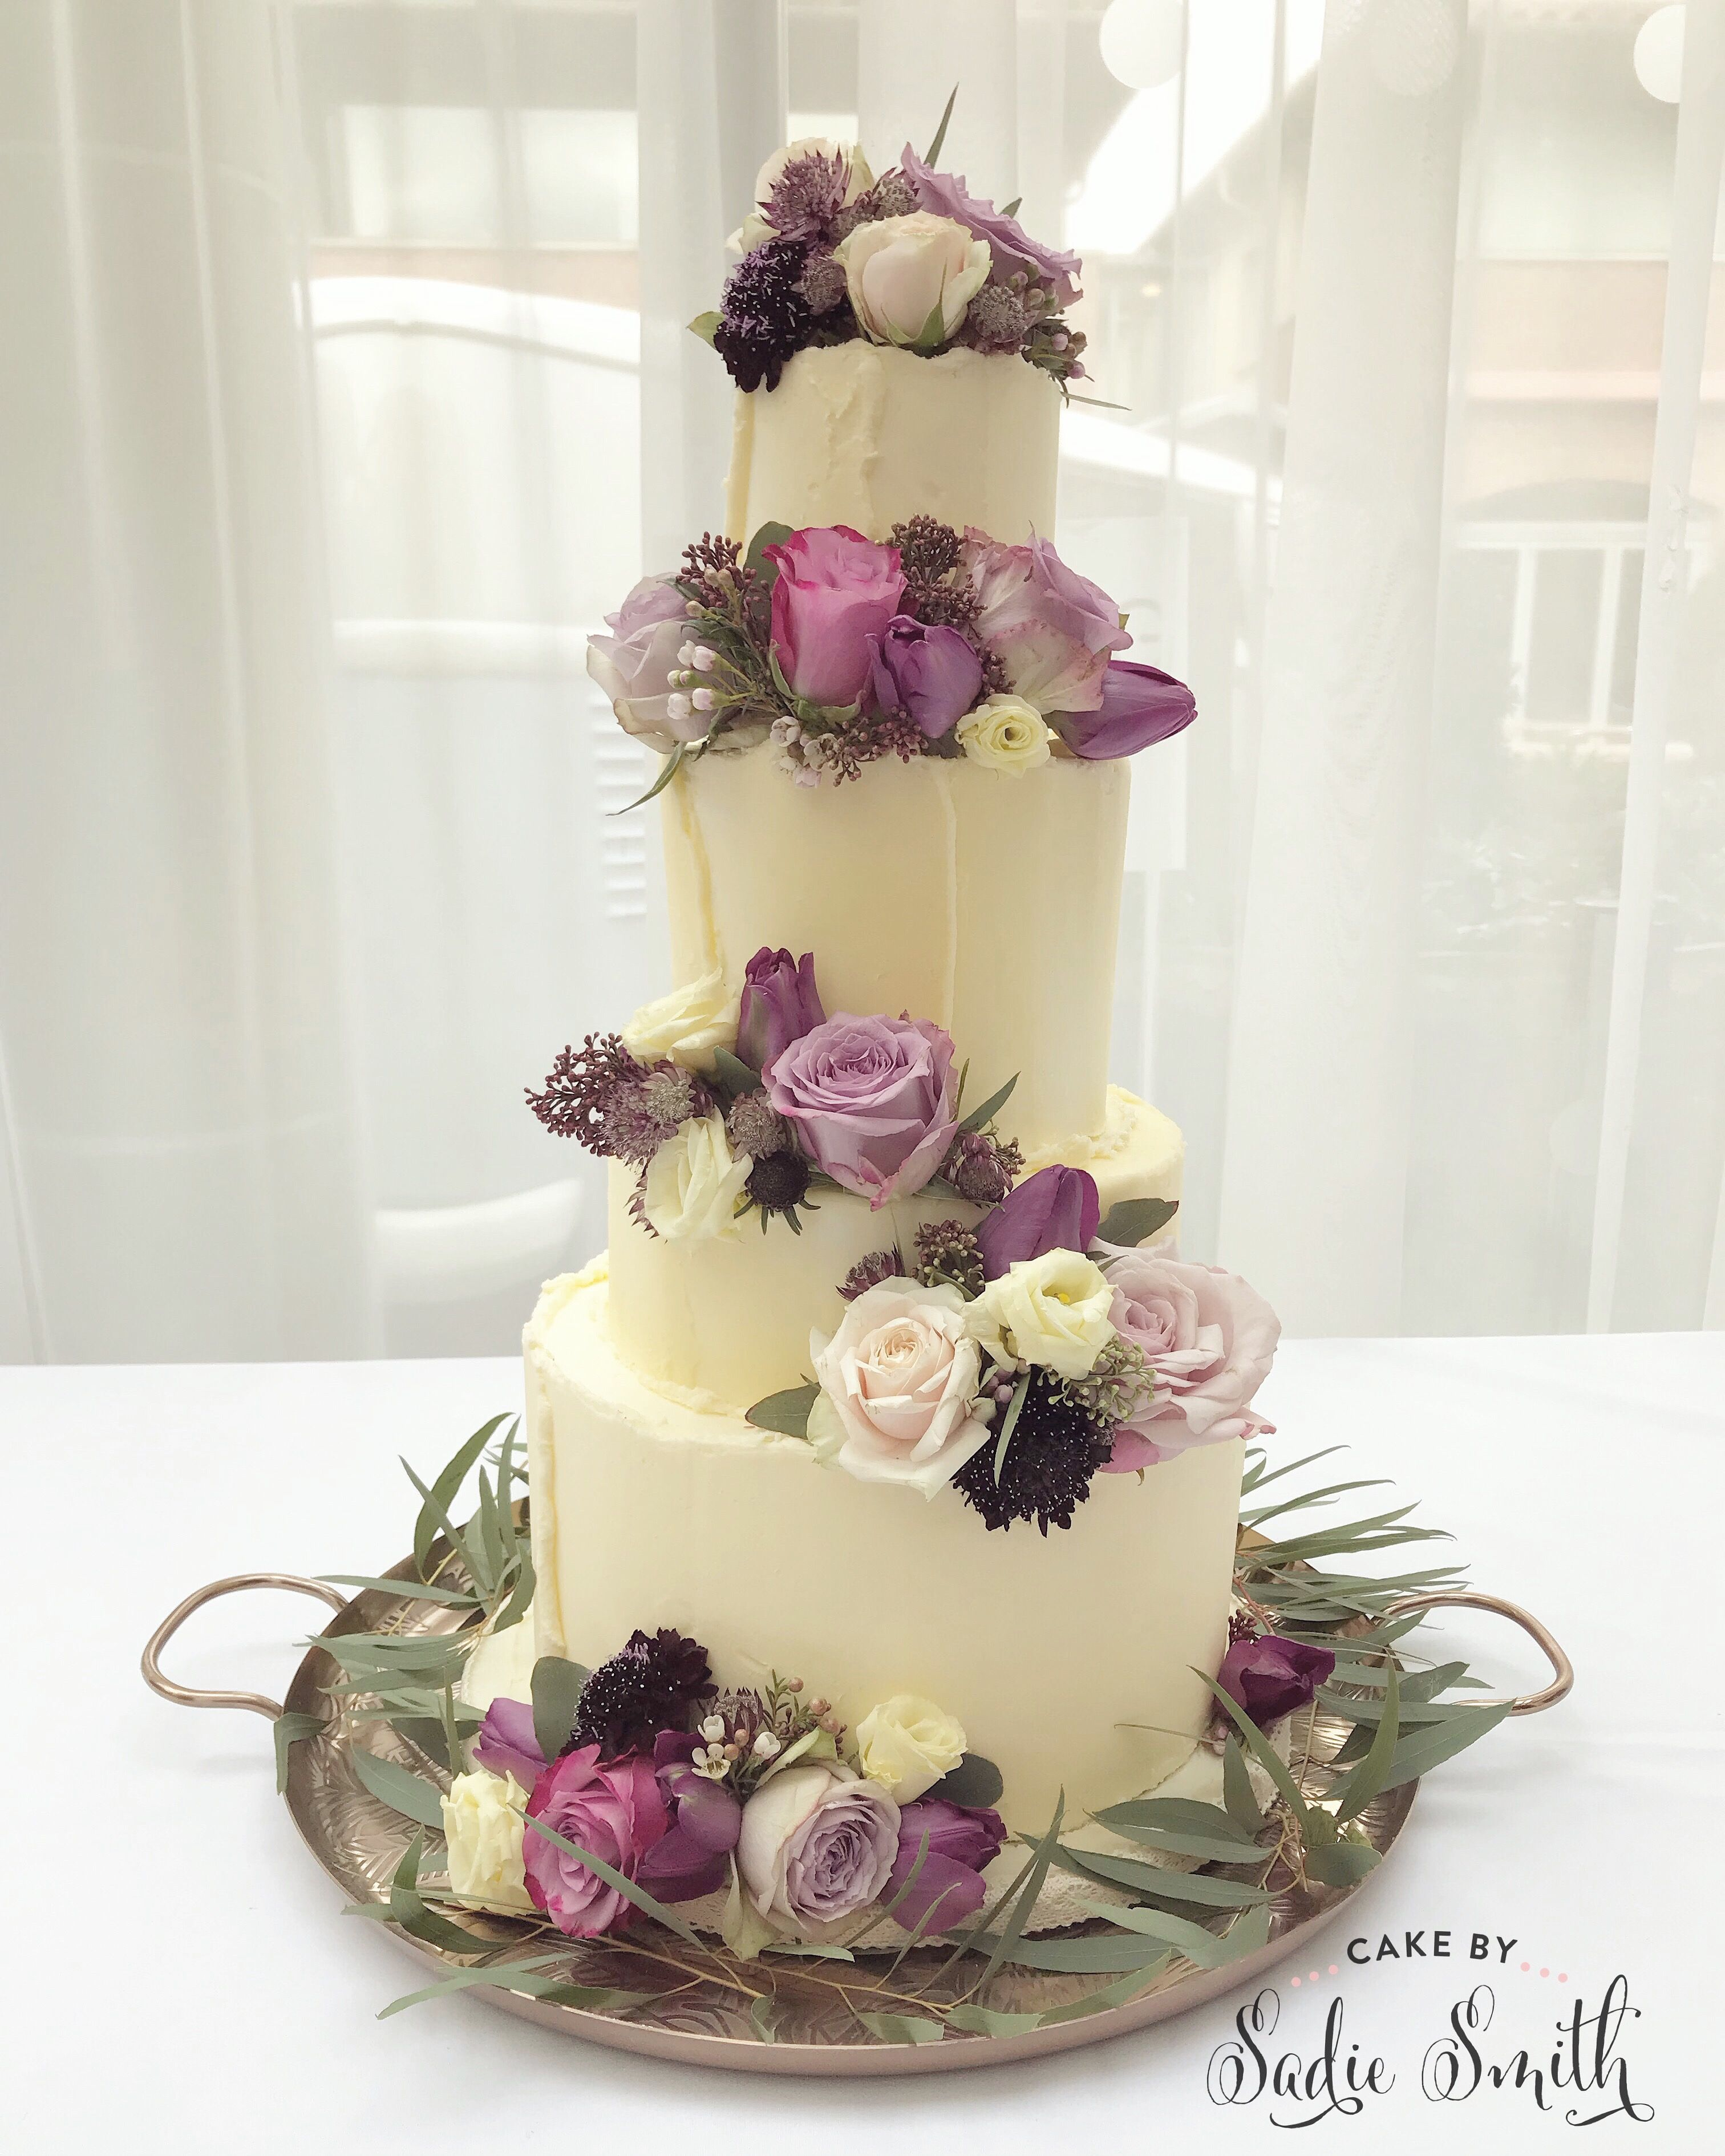 A rough edged textured wedding cake decorated with pastel